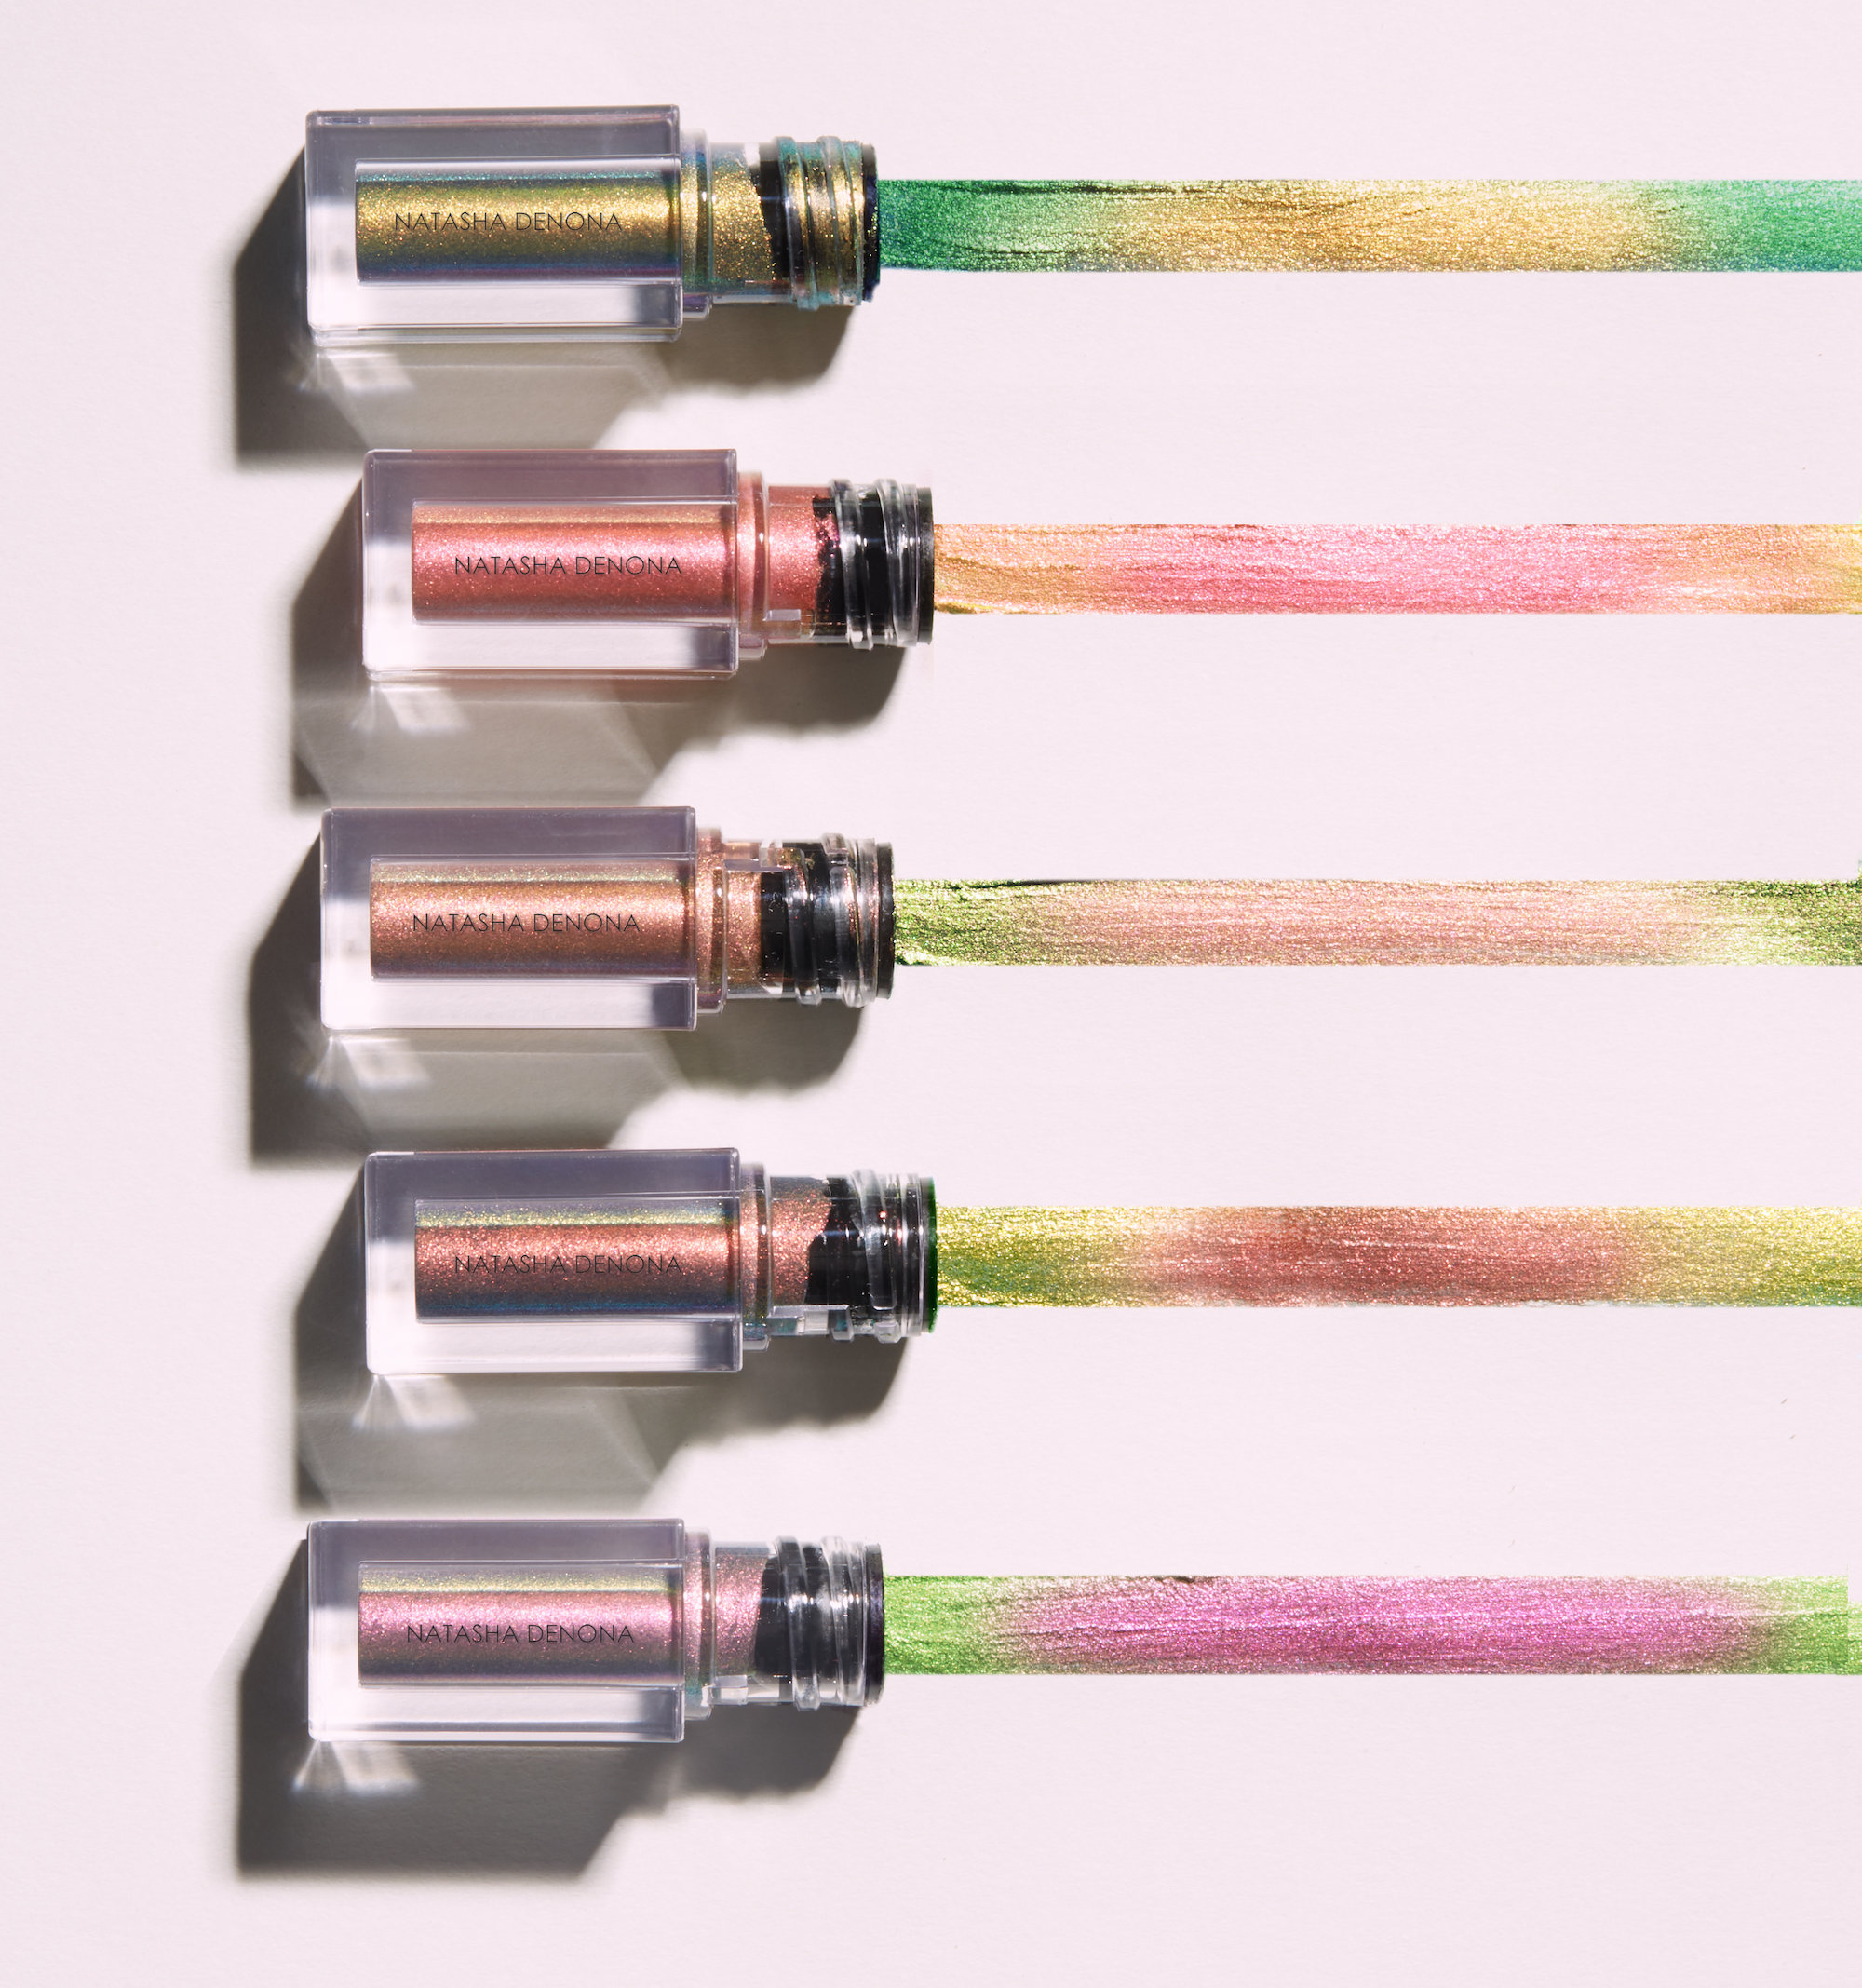 Alternate product image for Chromium Multichrome Liquid Eyeshadow shown with the description.